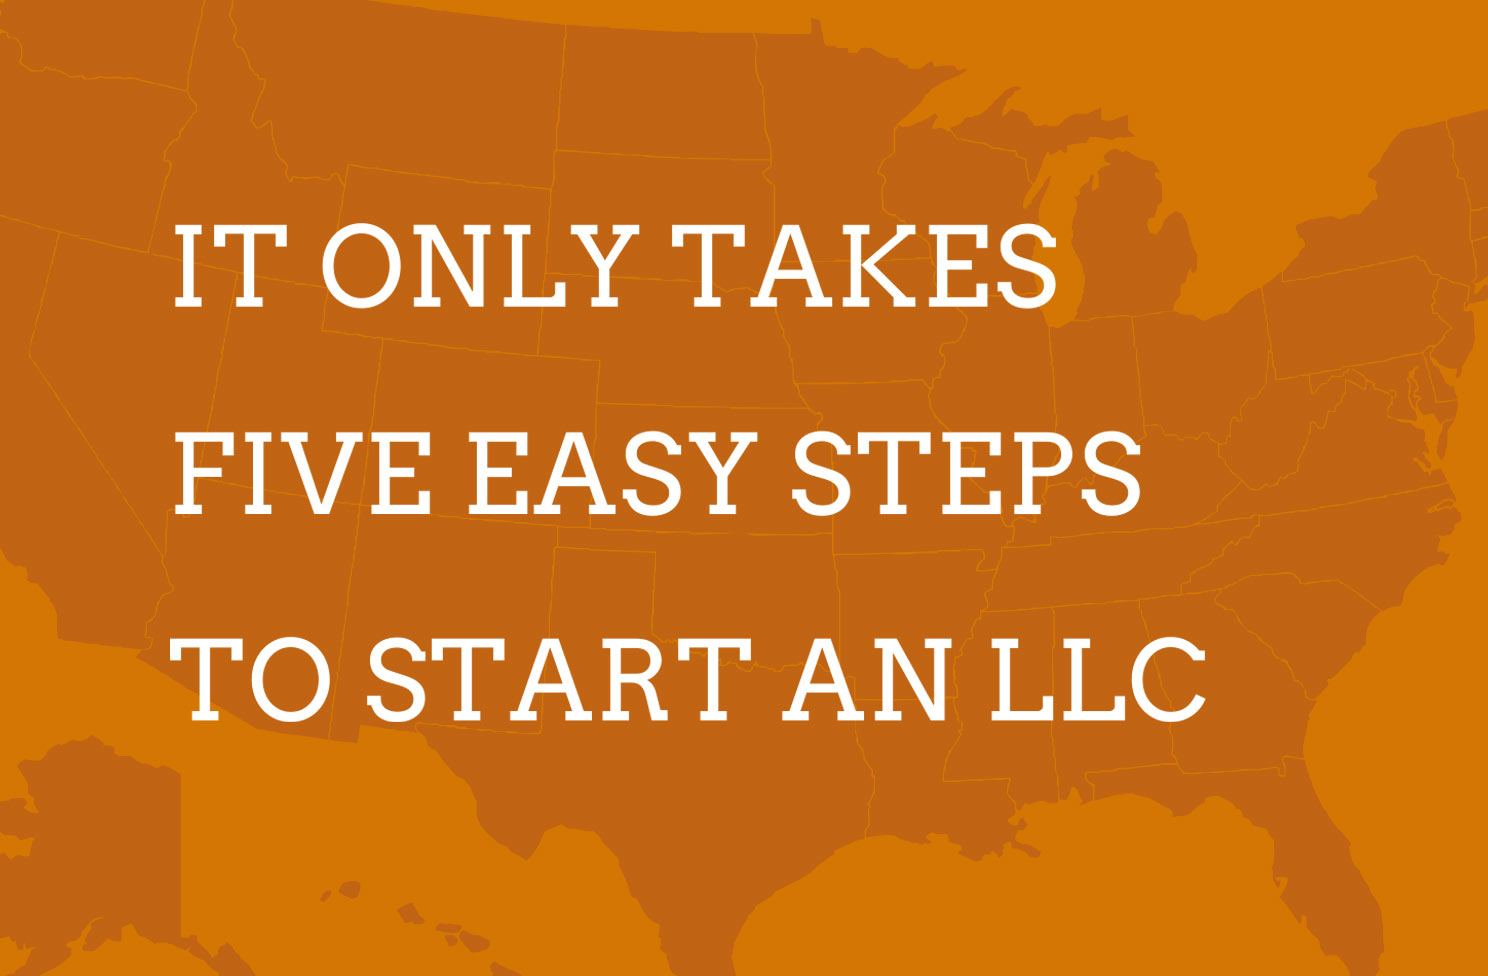 Starting An Llc In Alabama